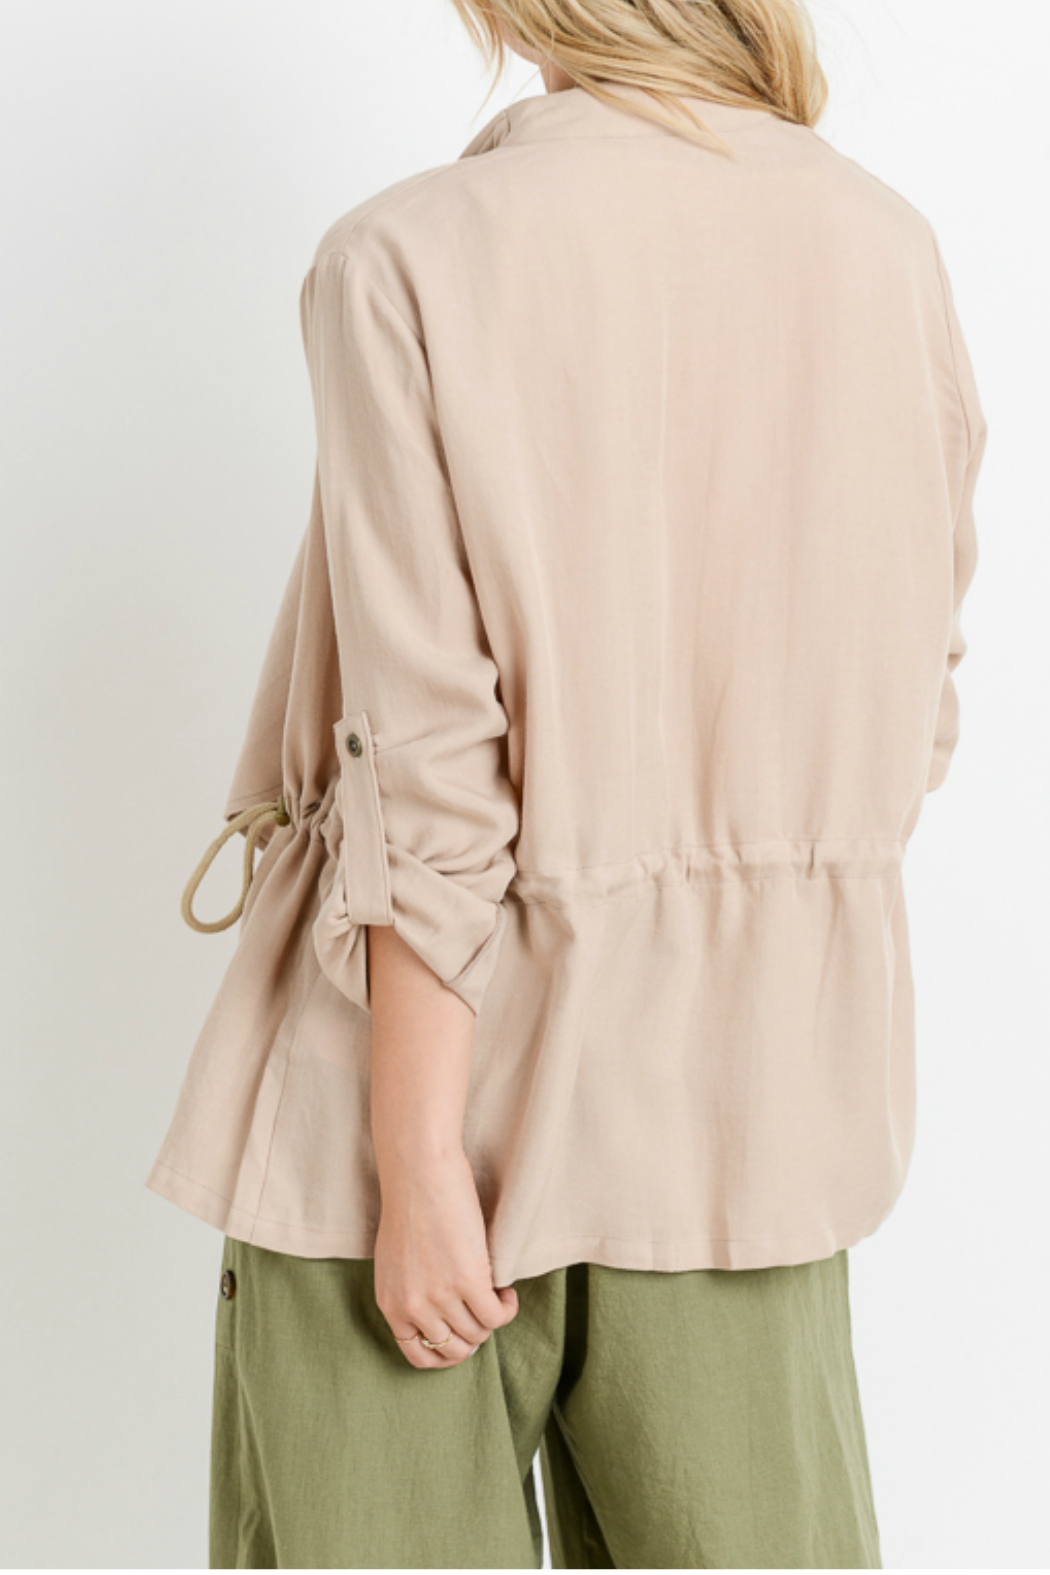 Sinuous Rolled up sleeve cardigan w/ adjustable sides - Side Cropped Image